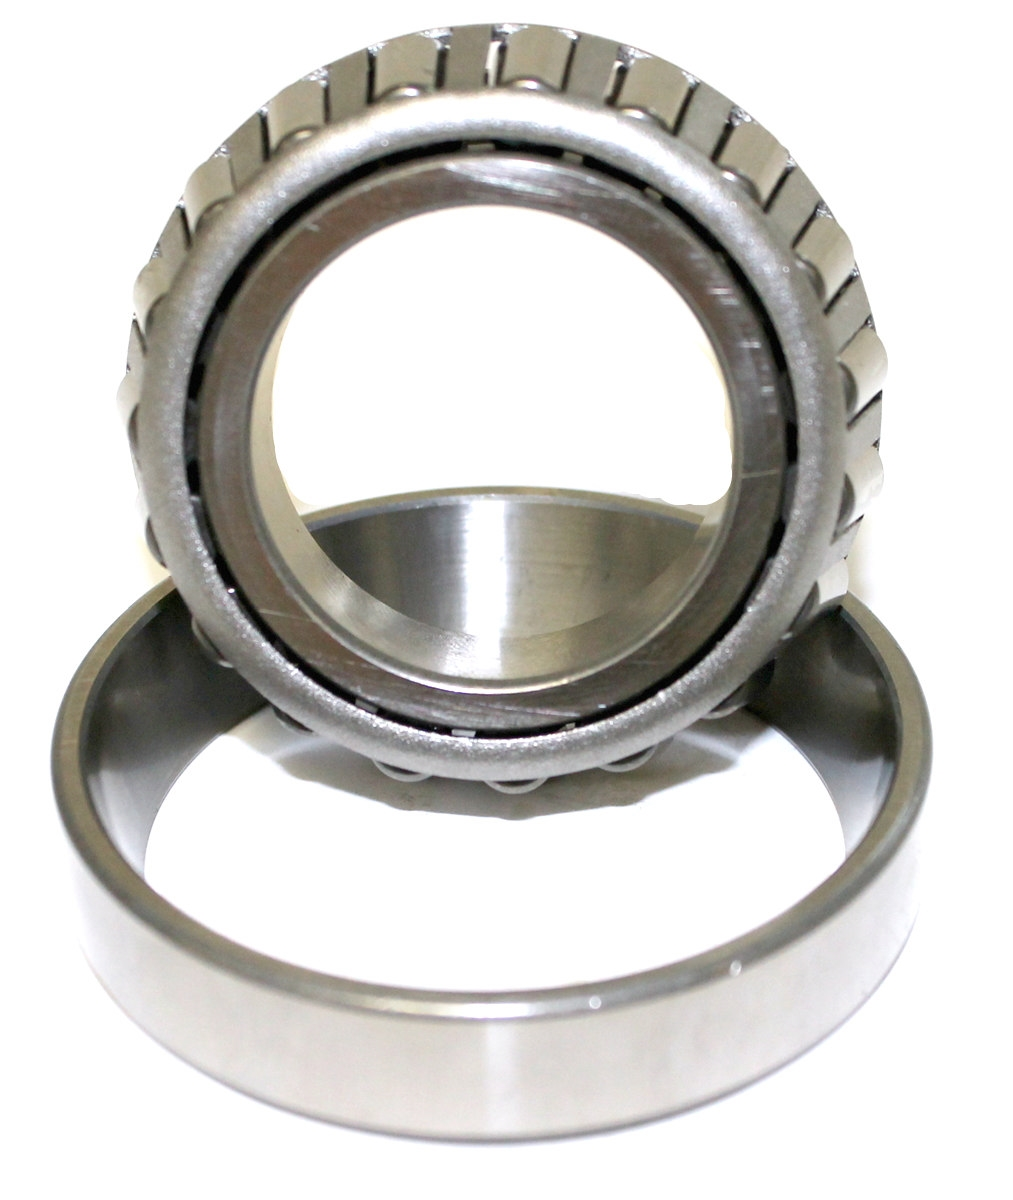 Borg Warner T45 / T5 Bearing Cup & Cone, A-6